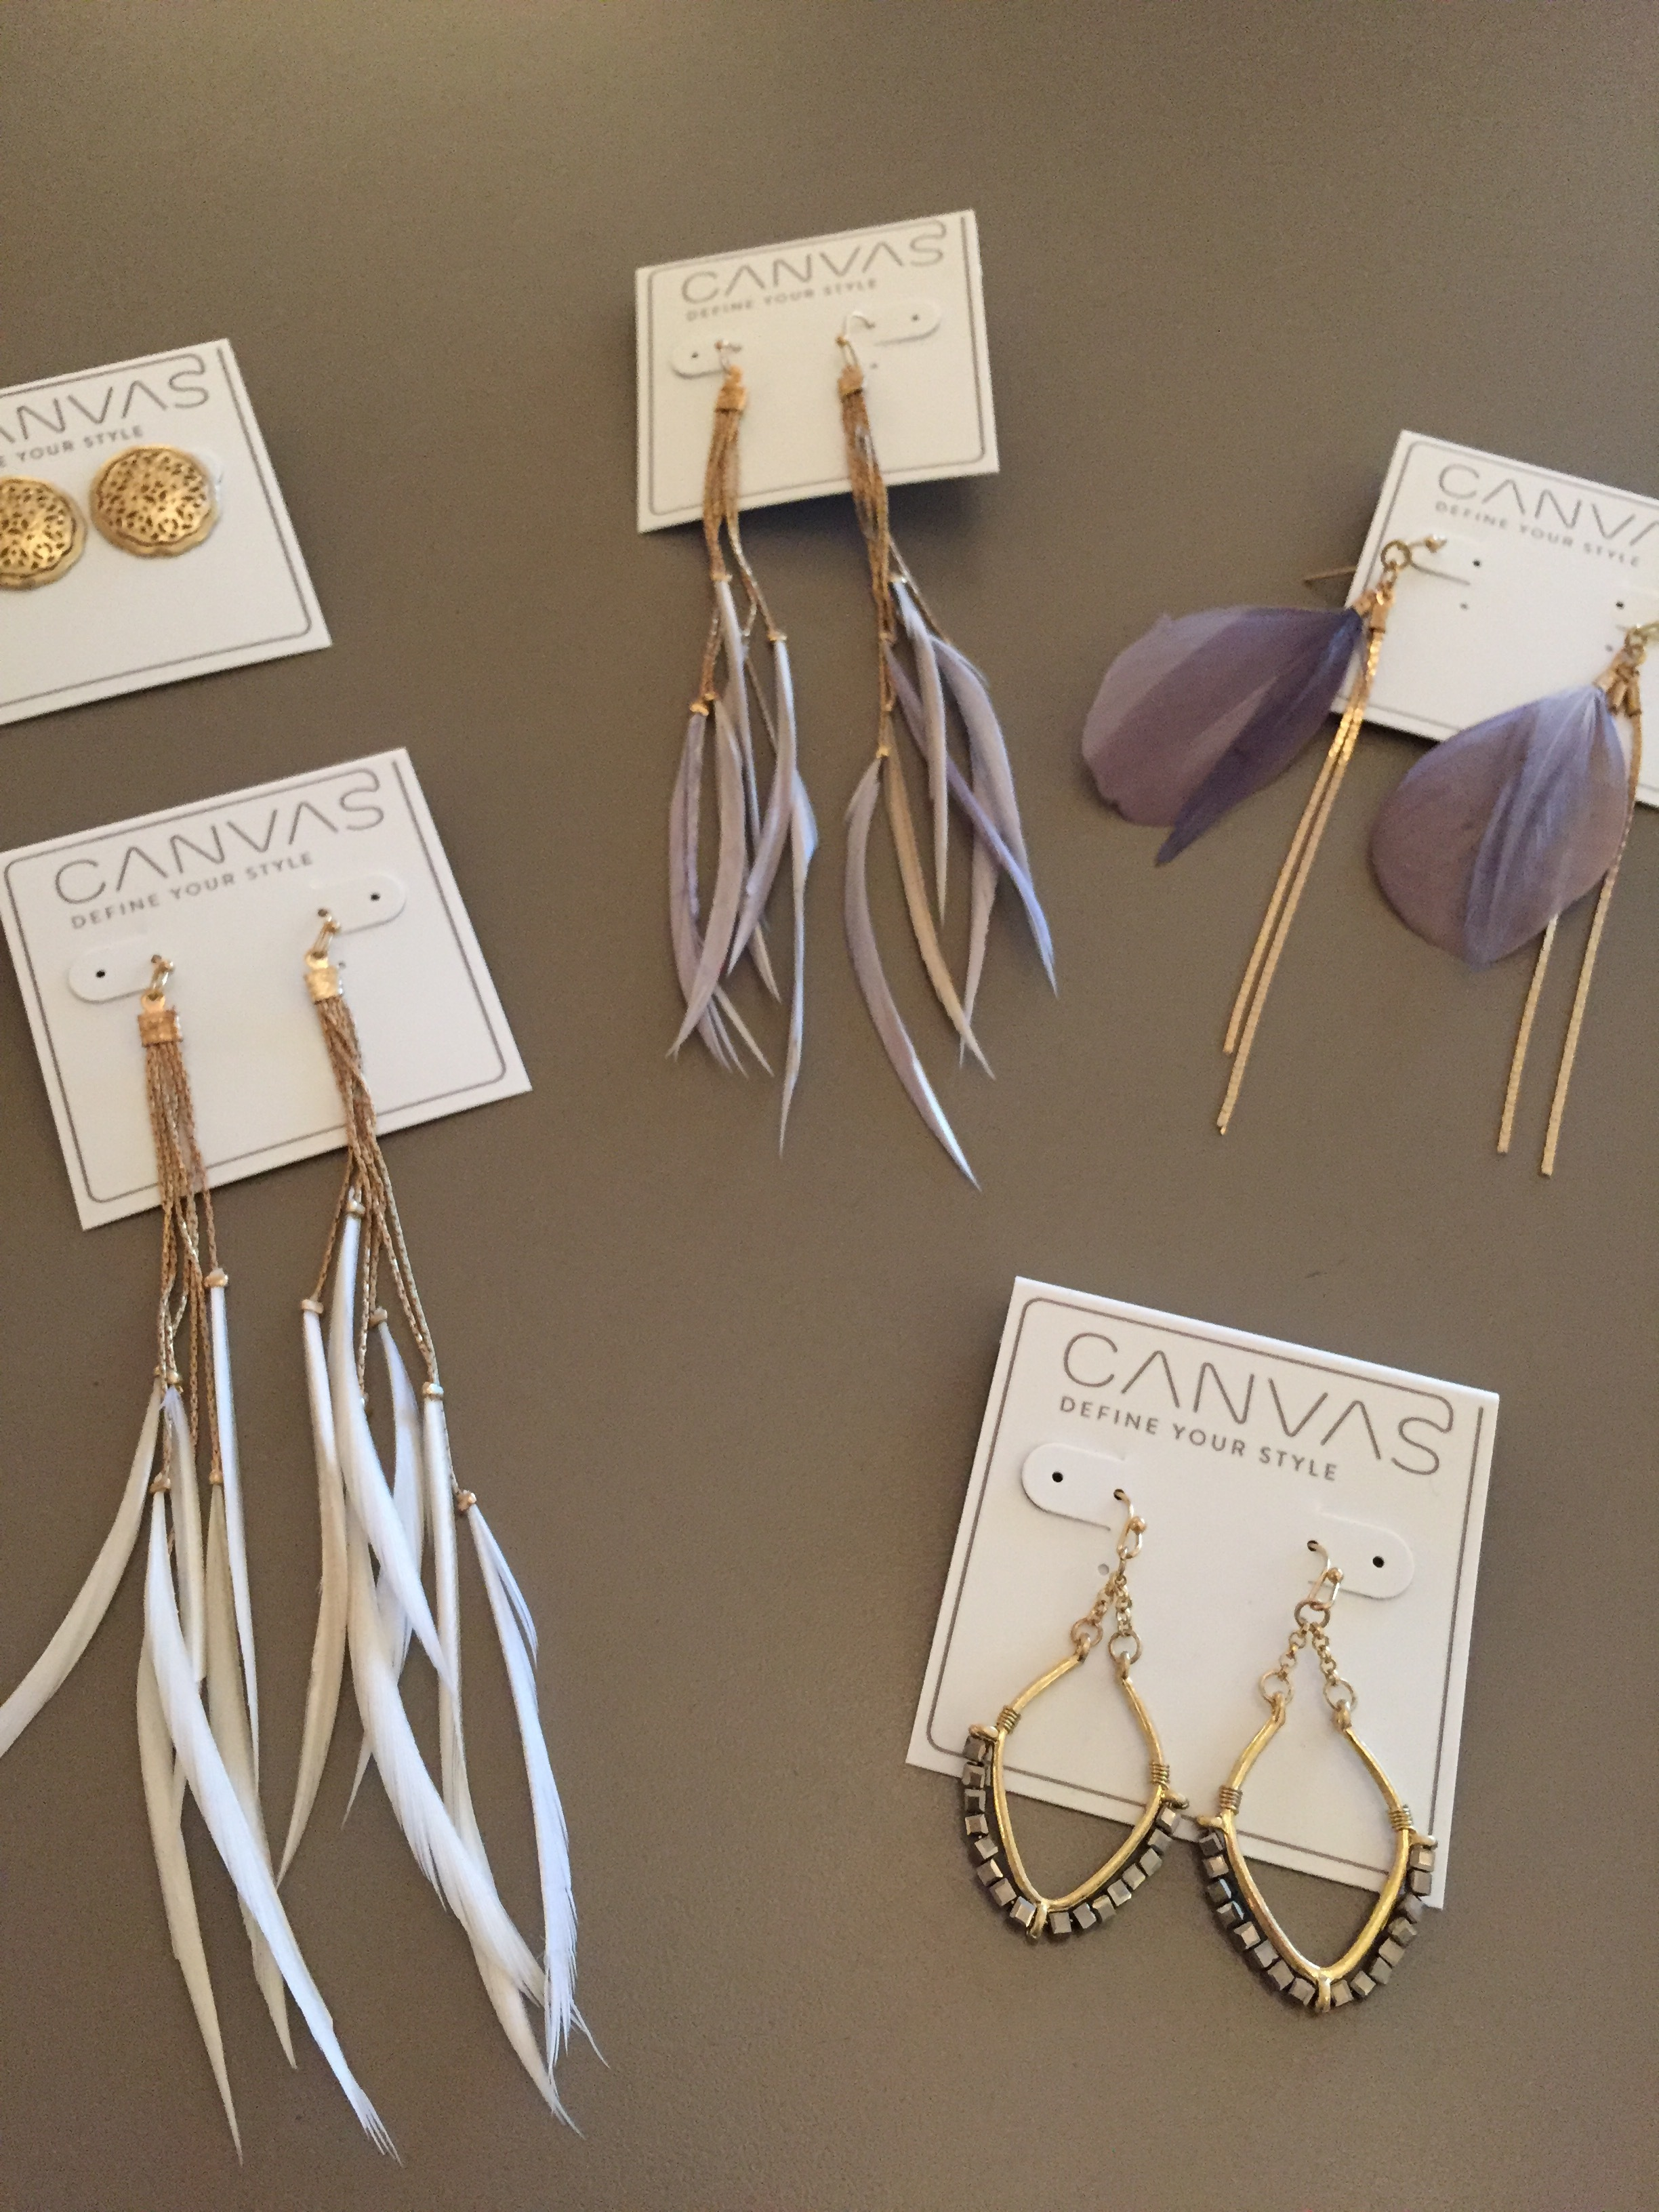 Canvas jewelry in stock (earrings and necklaces at various prices)